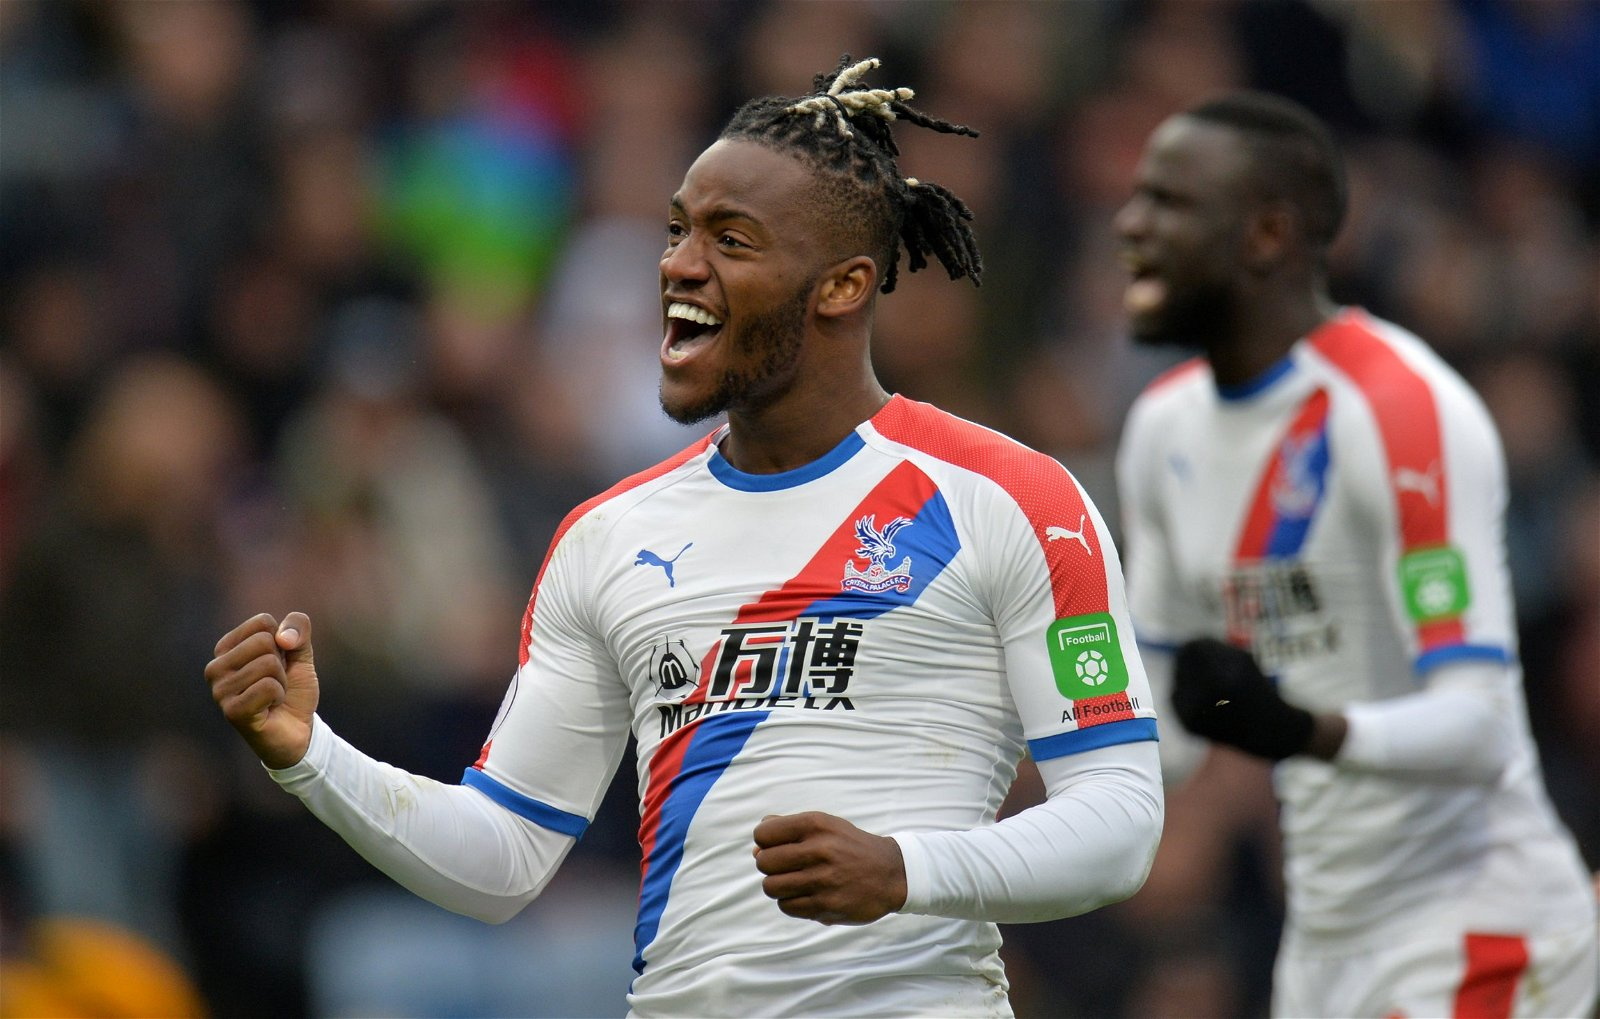 Batshuayi celebrates for Palace